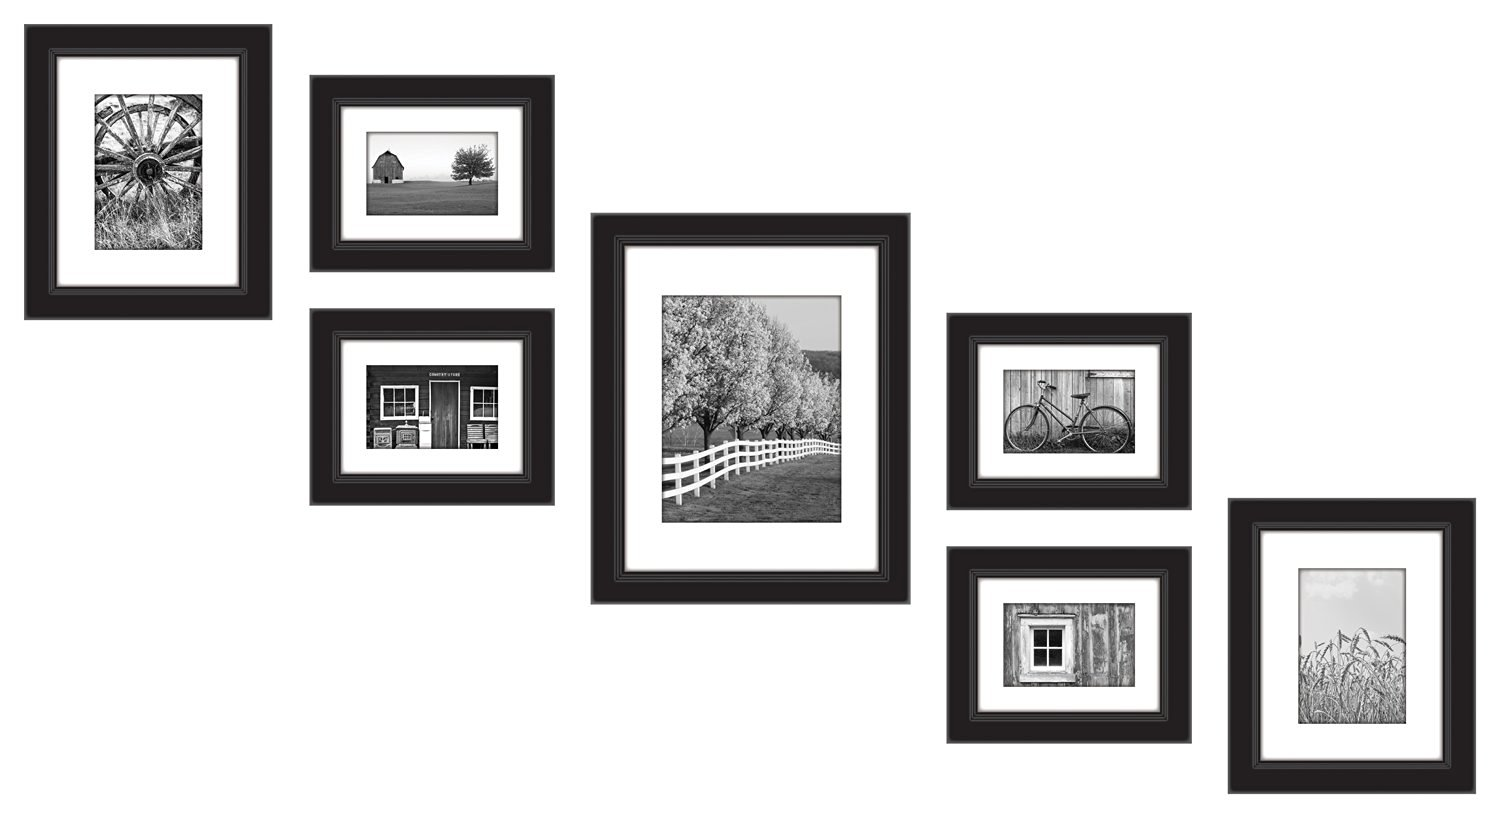 Gallery Perfect 7-Piece Wood Frame Set, Black